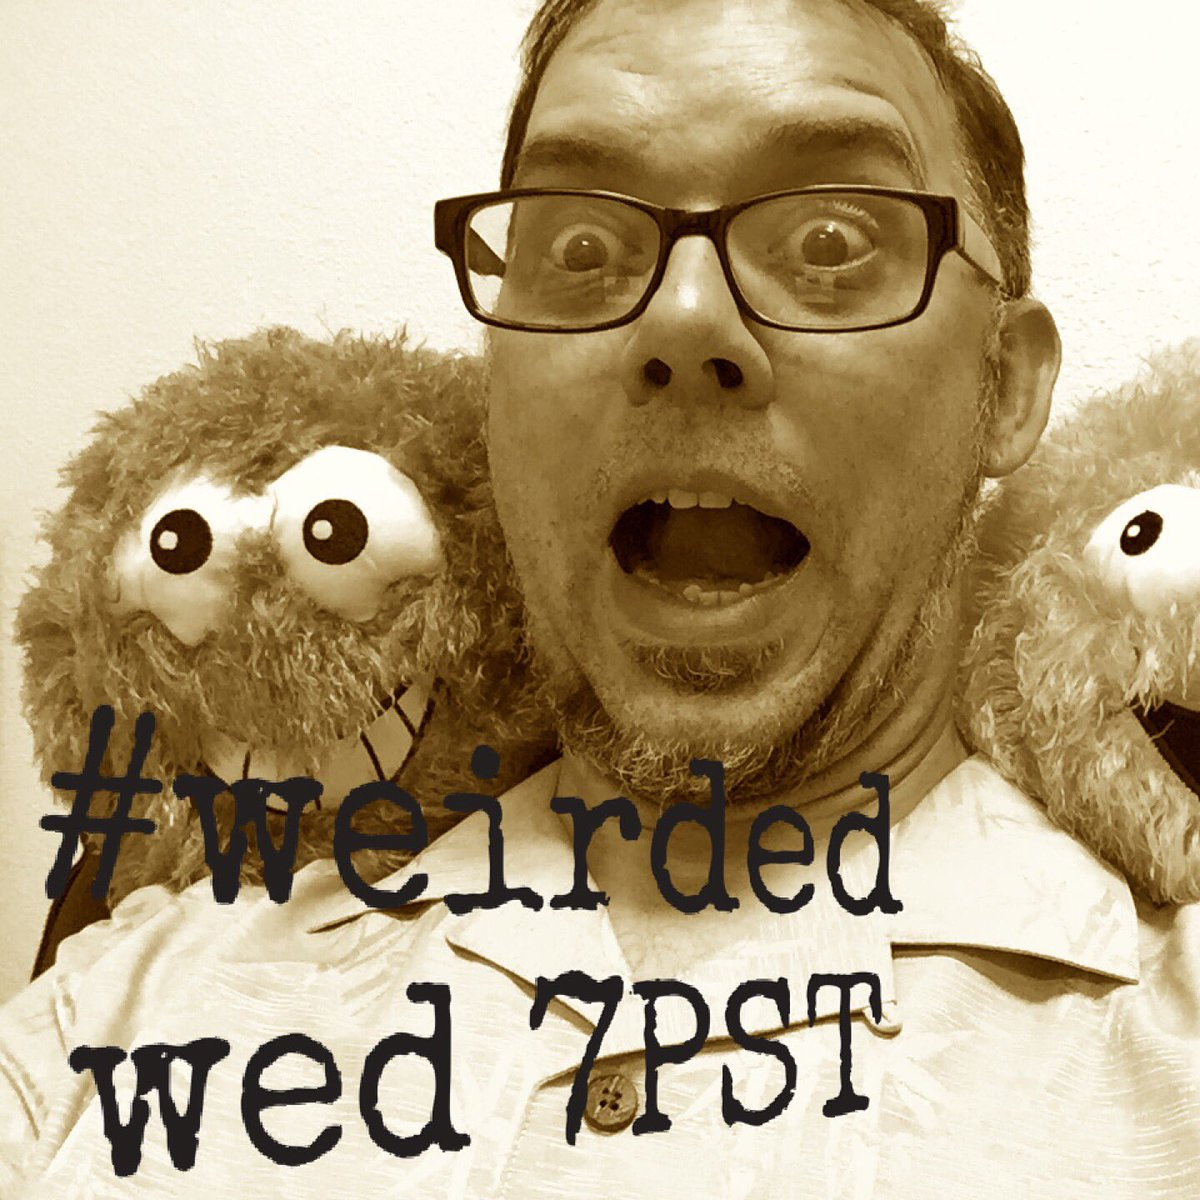 In 60 minutes join me for a #WeirdEd about subversion instruction. @davidtedu @nathan_stevens #tagasubversive https://t.co/HPfs4m1VCa